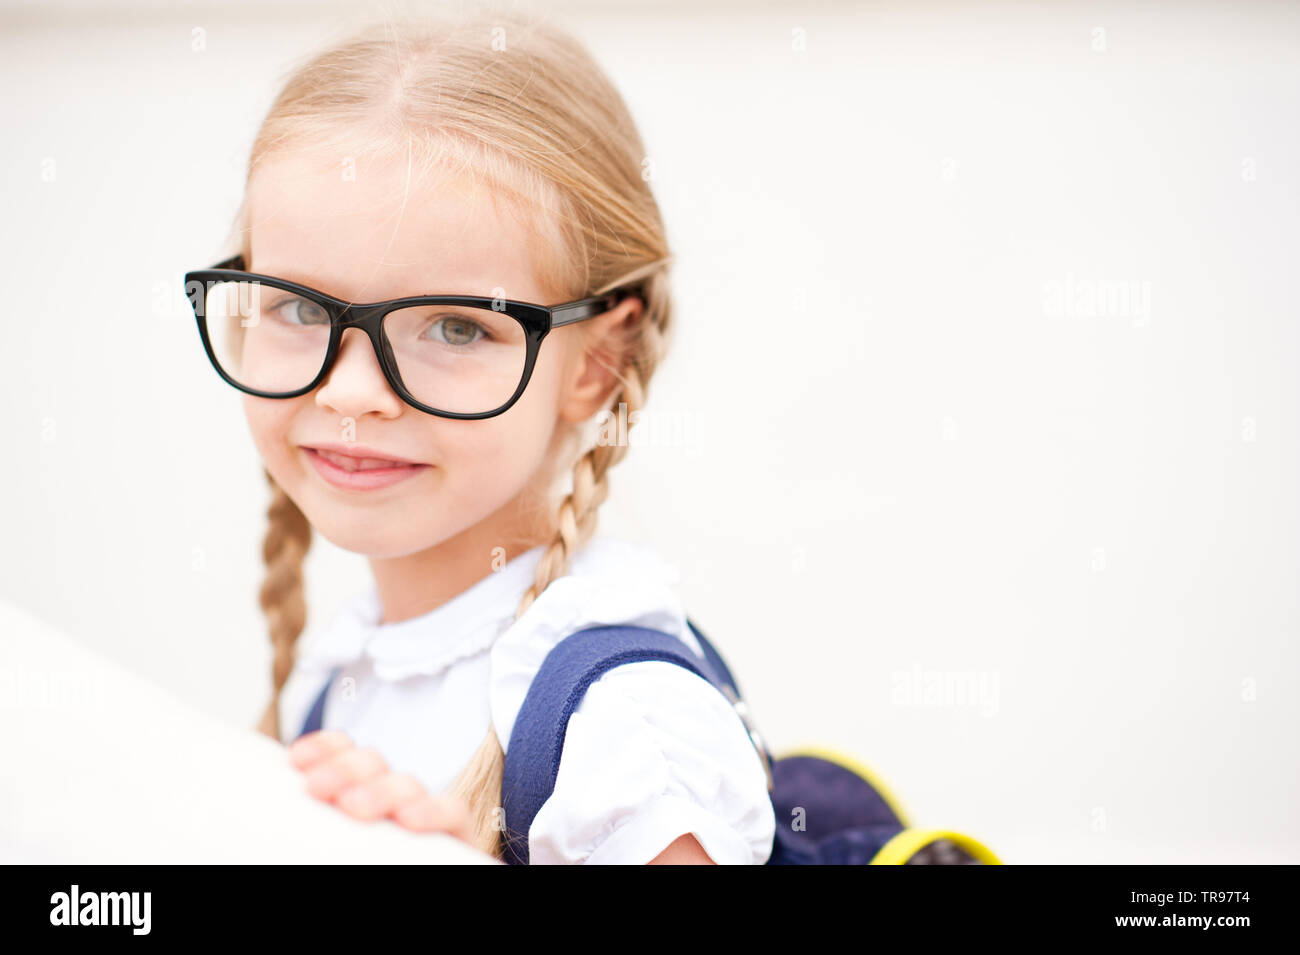 Smiling kid girl 6-7 year old wearing glasses and school bag outdoors. Blonde child looking at camera. Back to school. Childhood. - Stock Image